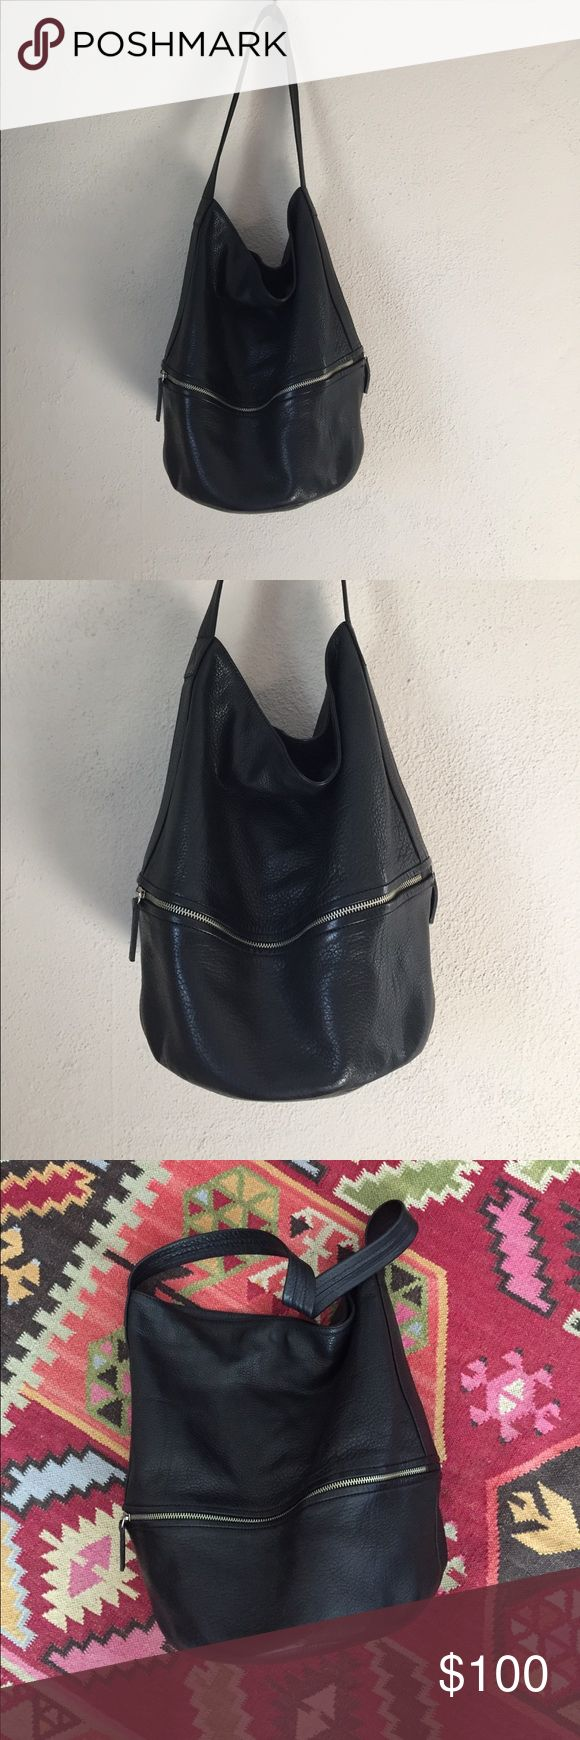 Hare + Hart Large Black Nappa Leather Bucket Bag Slouchy black pebbled large bucket bag from the label Hare + Hart. This bag is in good condition with a few minor scuffs but no large issues. Has some outer zip pockets and interior has some slots and another zip pocket. Interior is lined in cotton. Bag is about 15 inches from bottom to top. The diameter of the bottom is 10 in.  Please ask if you have any questions about the bag size. This is a larger version than what is currently on their…